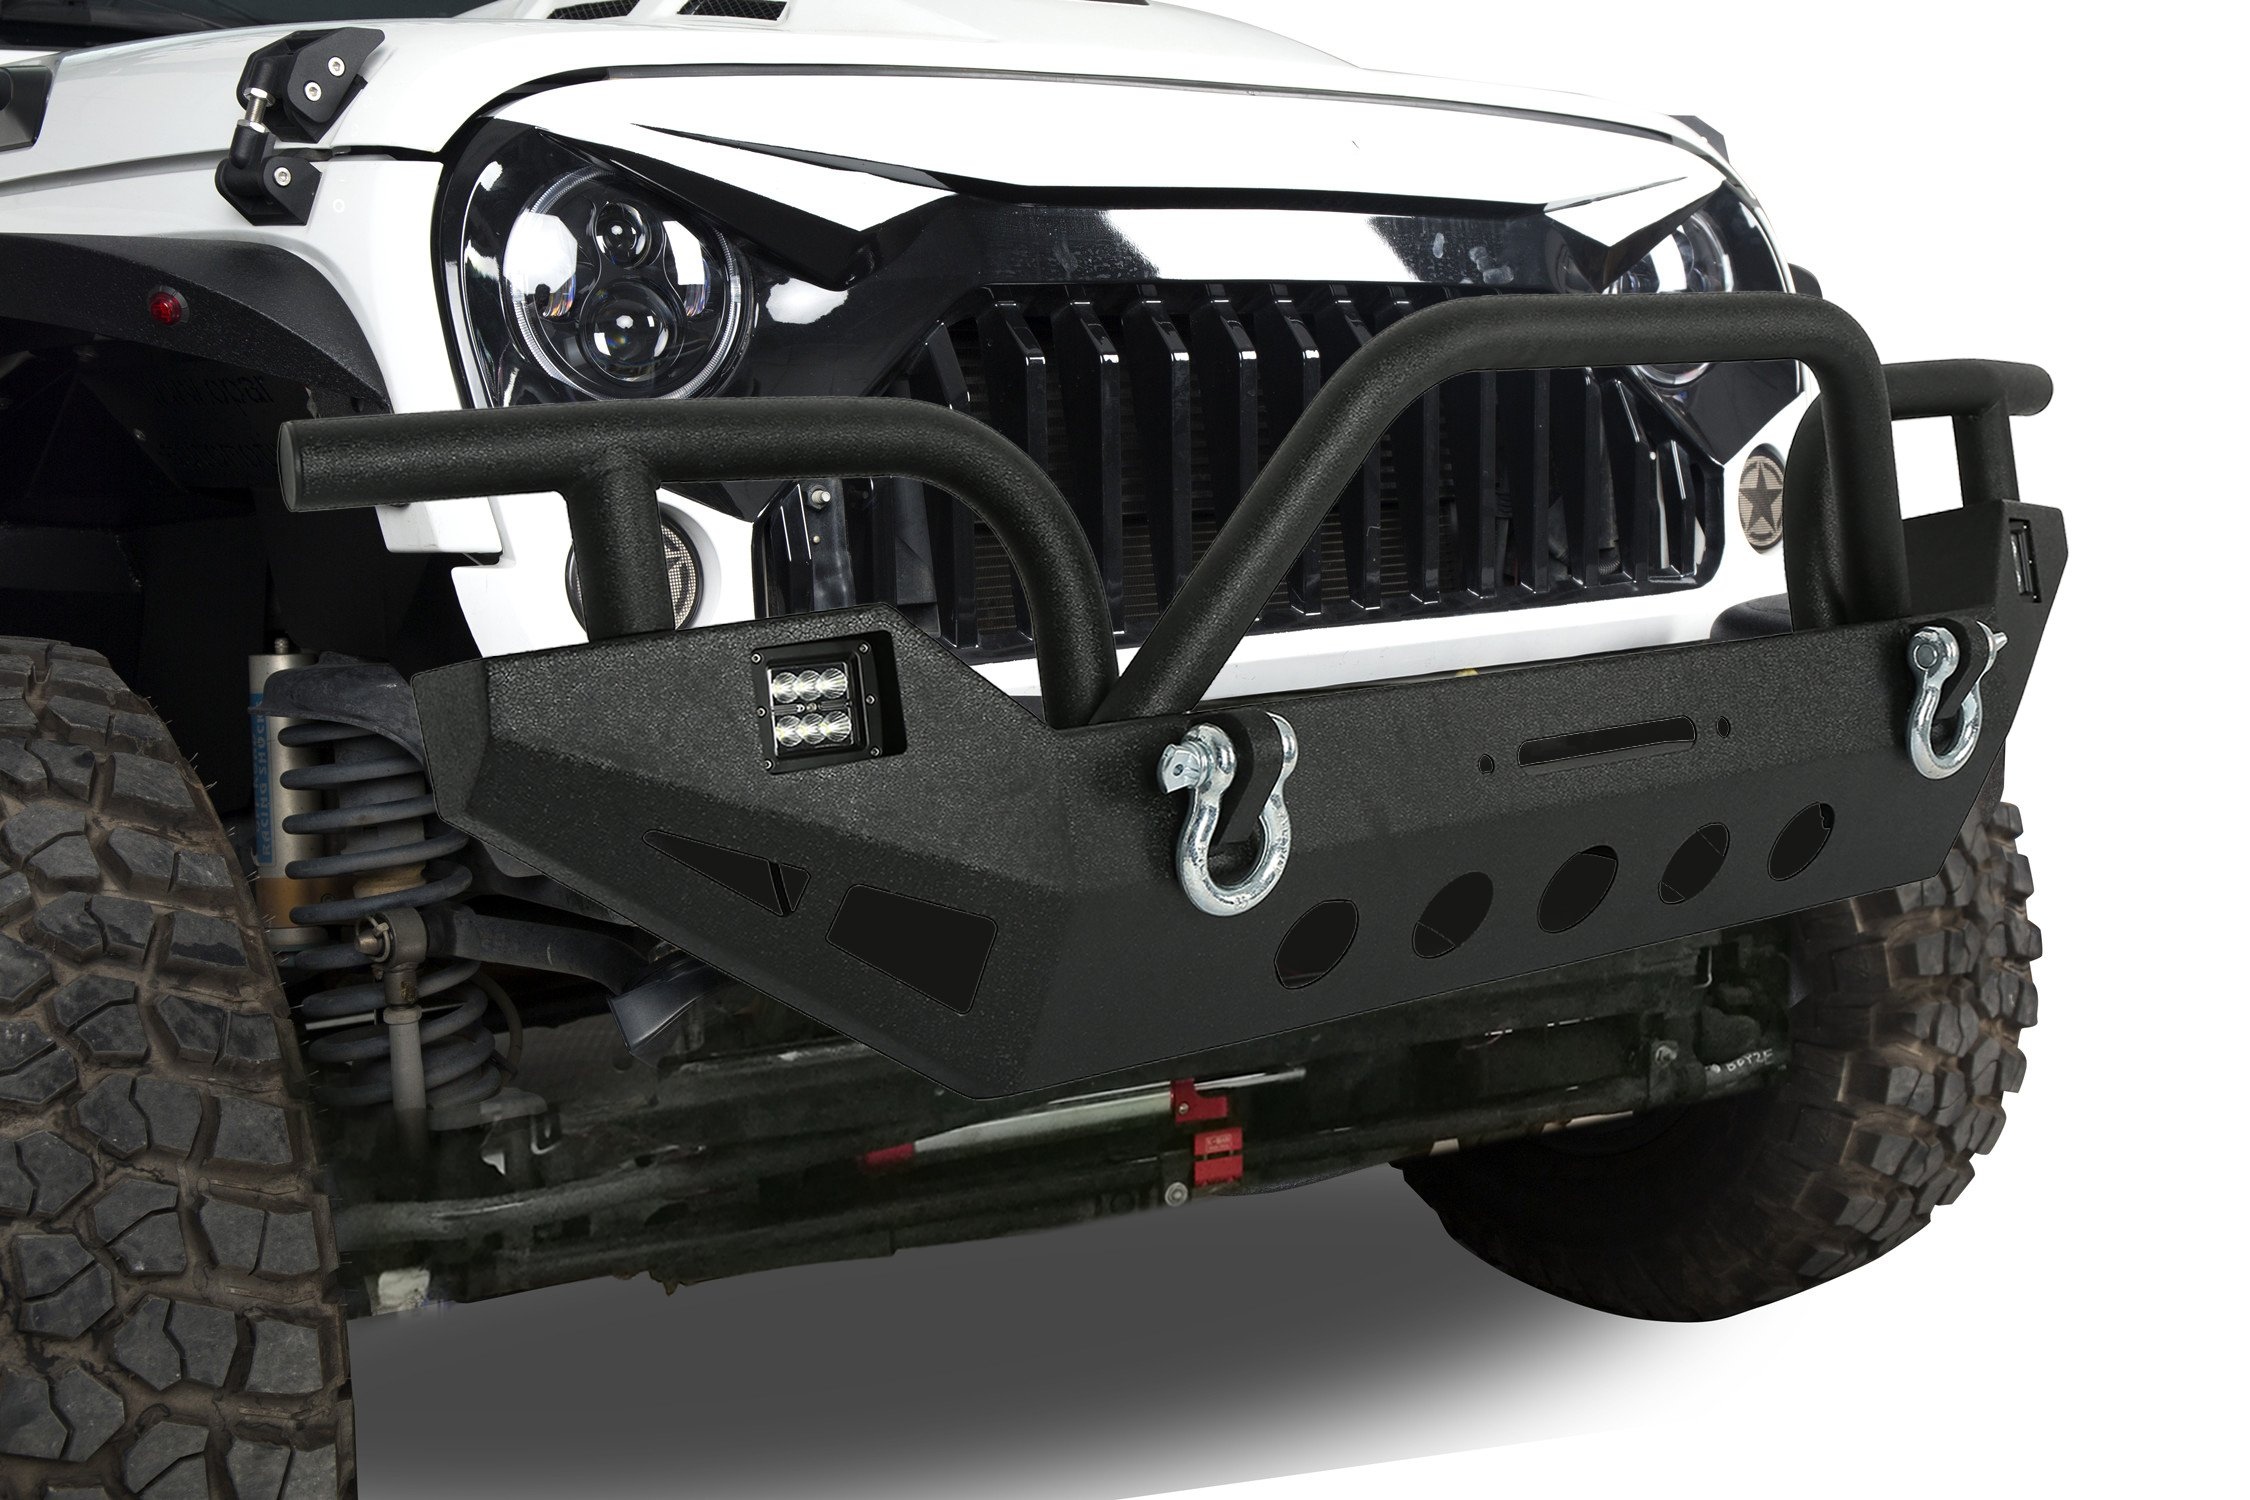 5d961082ca Get Quotations · u-Box 2007-2018 Jeep Front Bumper Wild Boar Style w/LED  Lighting